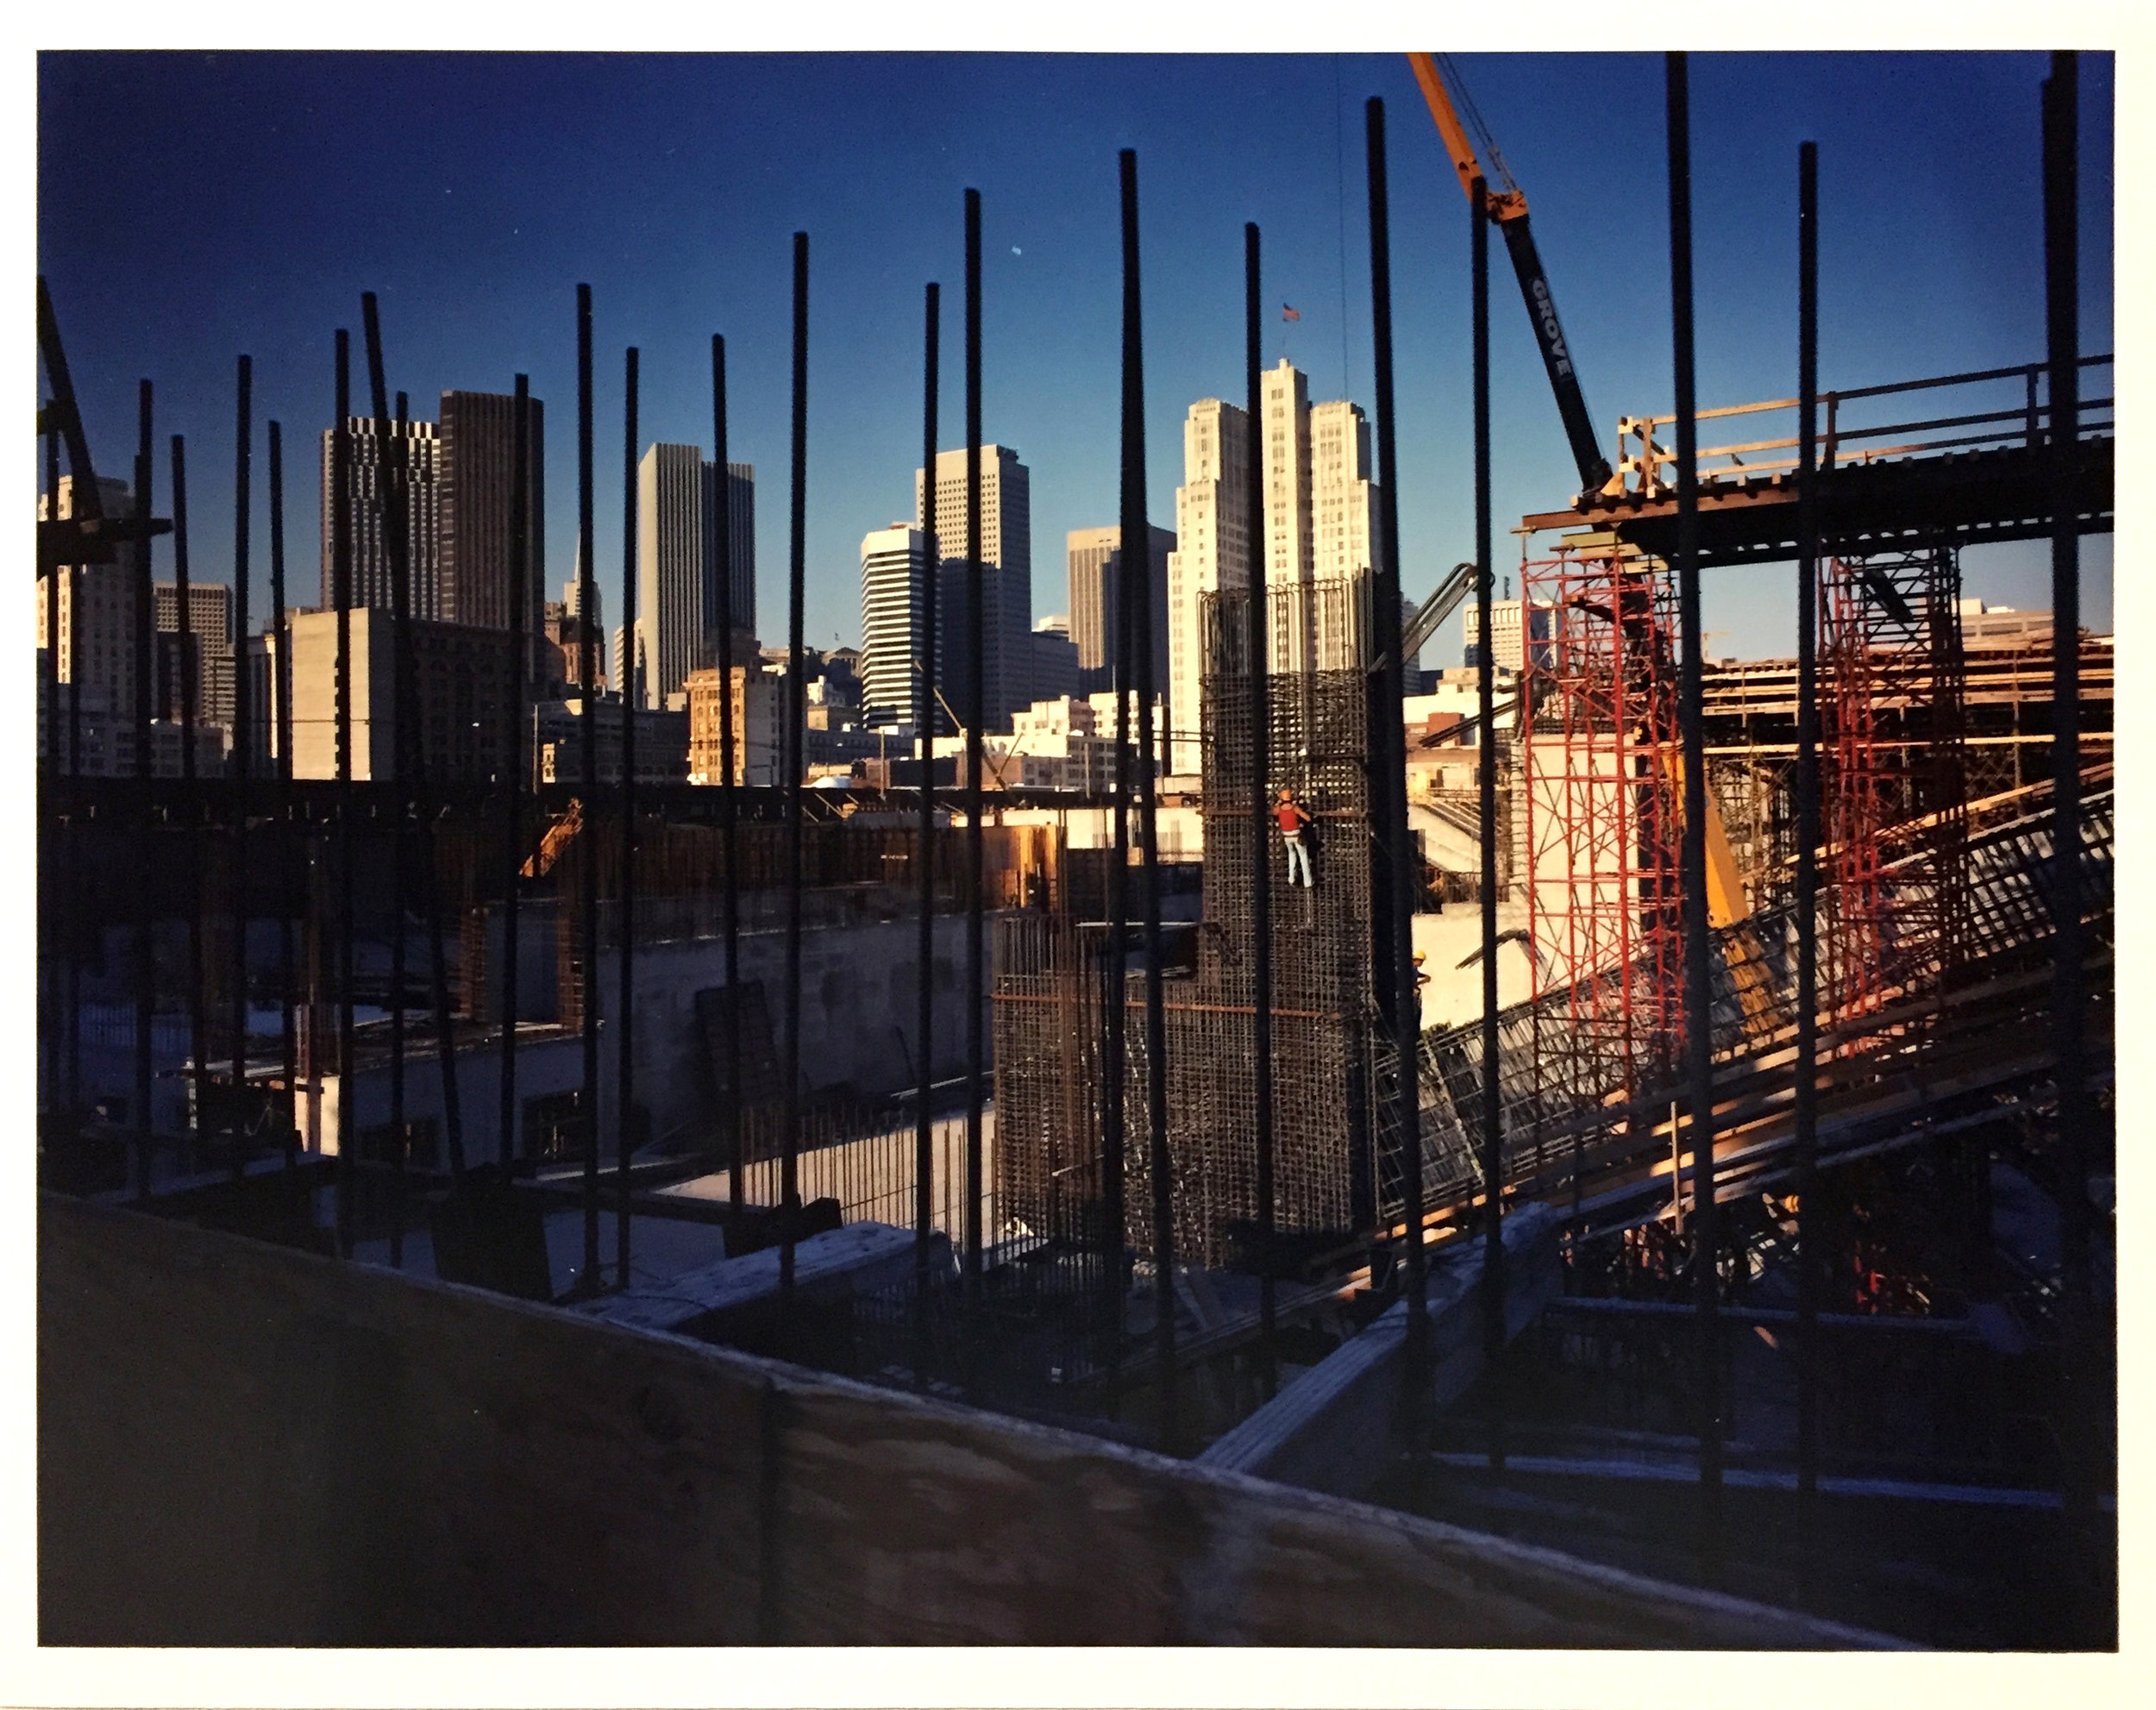 Moscone Center under construction, 1980 Vintage Chromogenic Print 11 x 14 inches and 16 x 20 inches